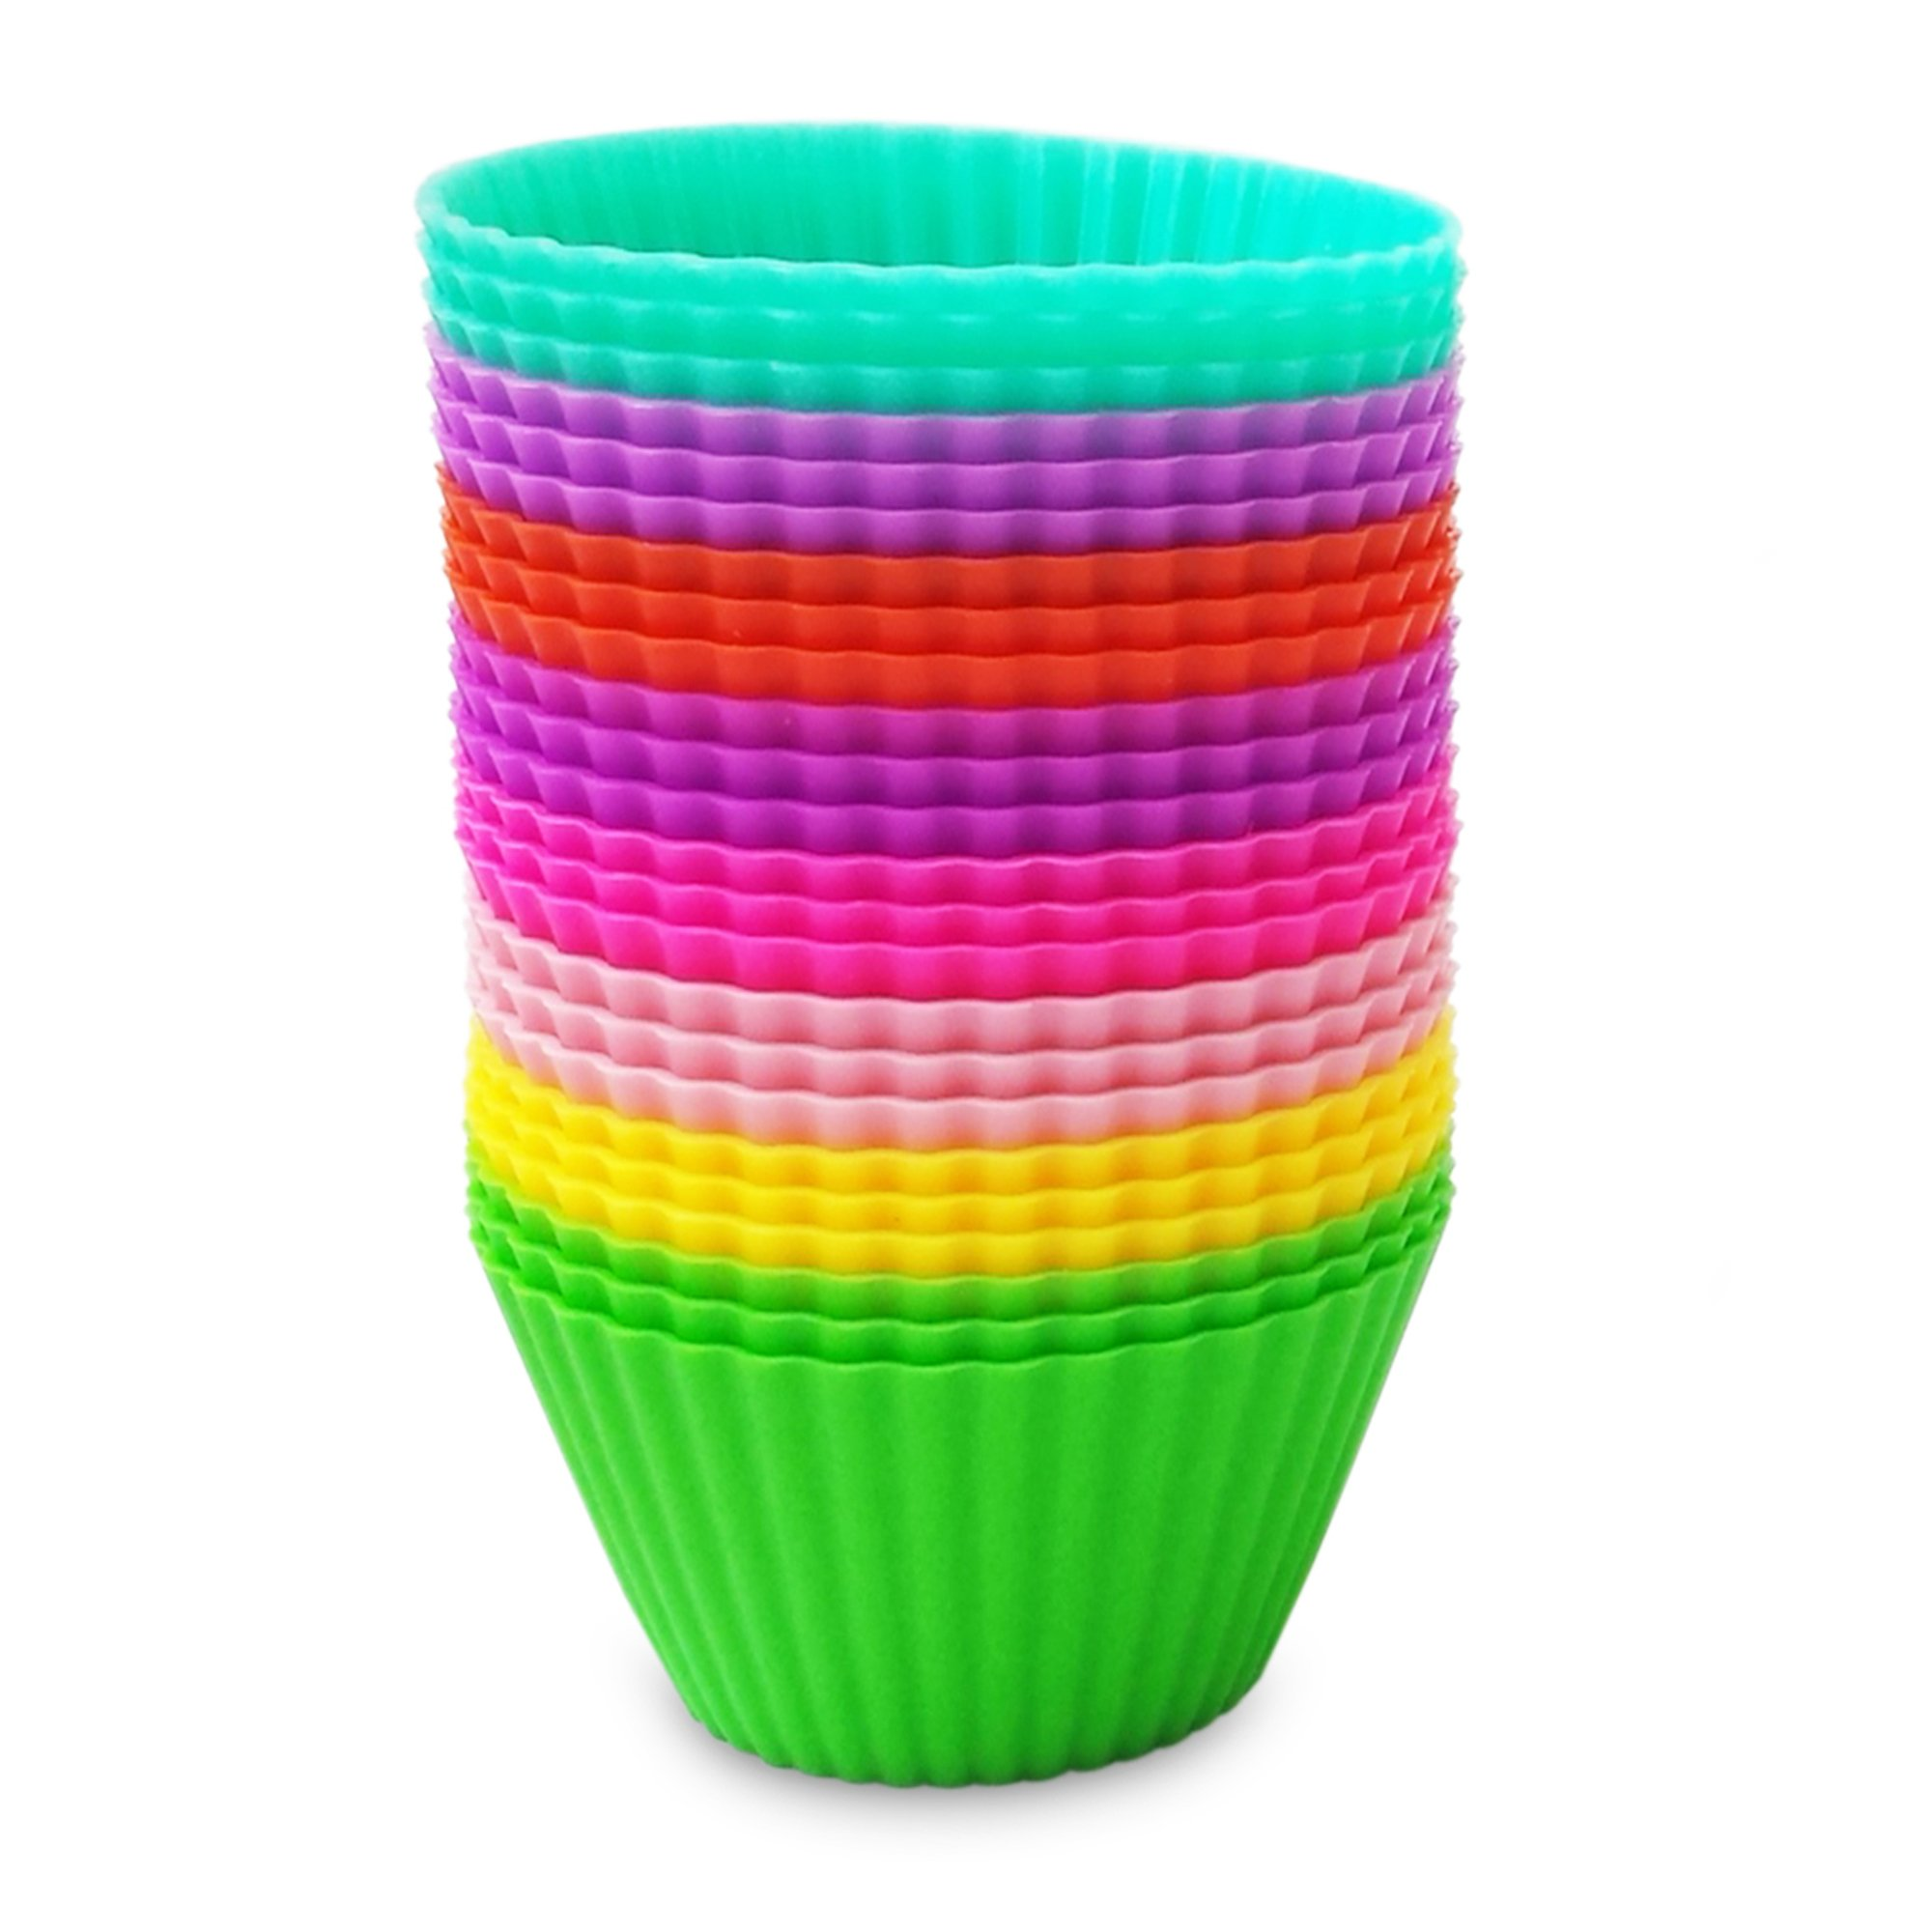 Silicone Baking Cups - Premium Quality - Non-Stick - Best 24 Cupcake Liners - Special Gift Packaging - Bonus Ebook - Enjoy by VMV Products